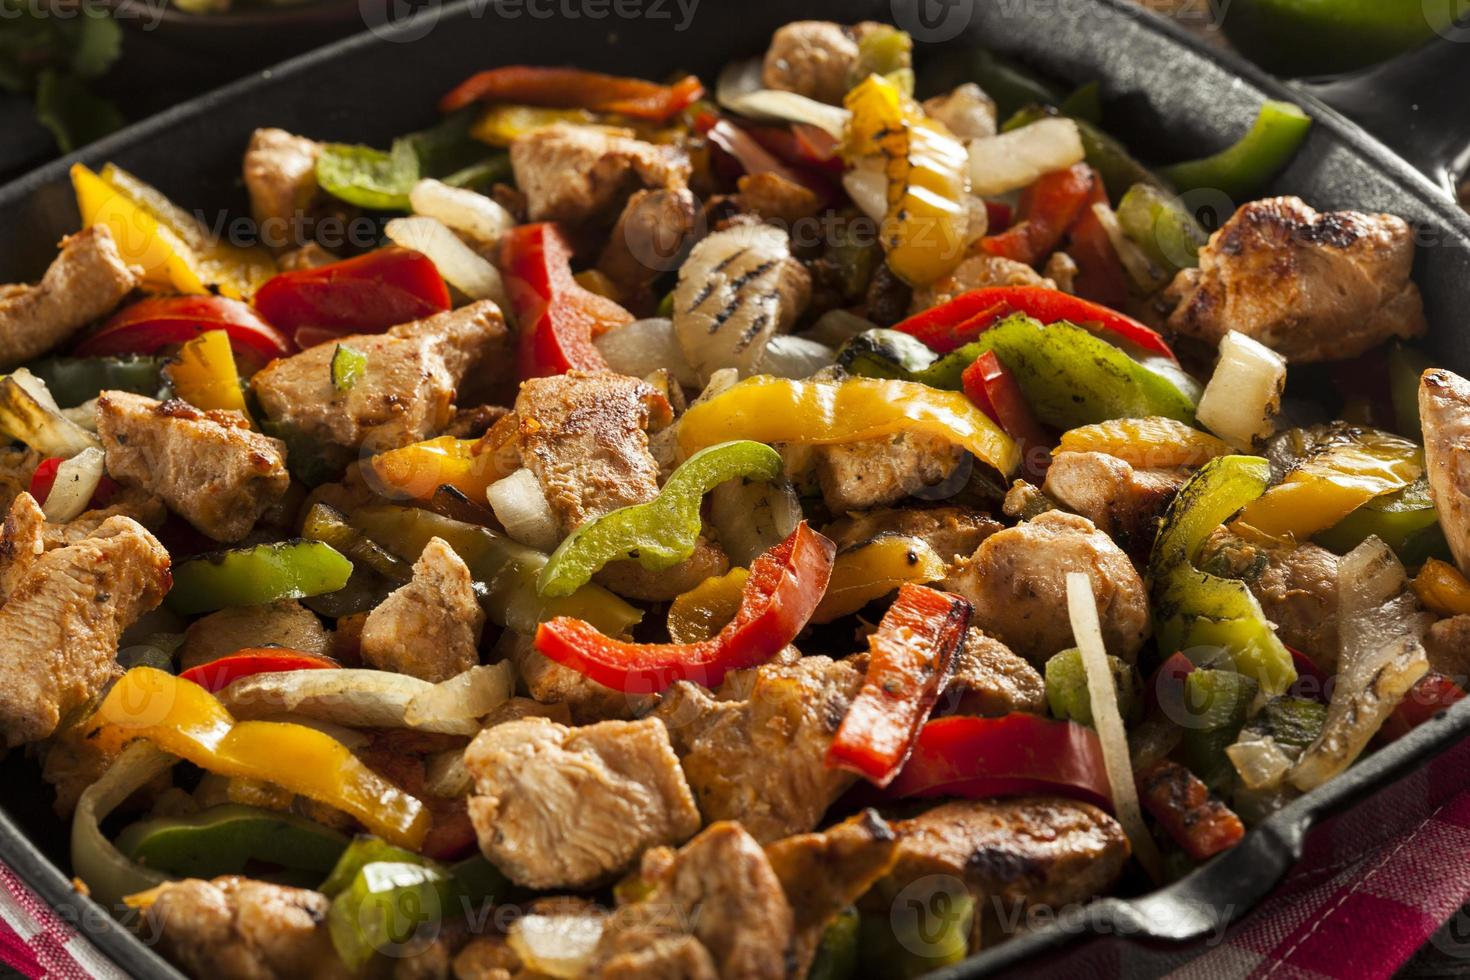 Homemade Chicken Fajitas with Vegetables photo